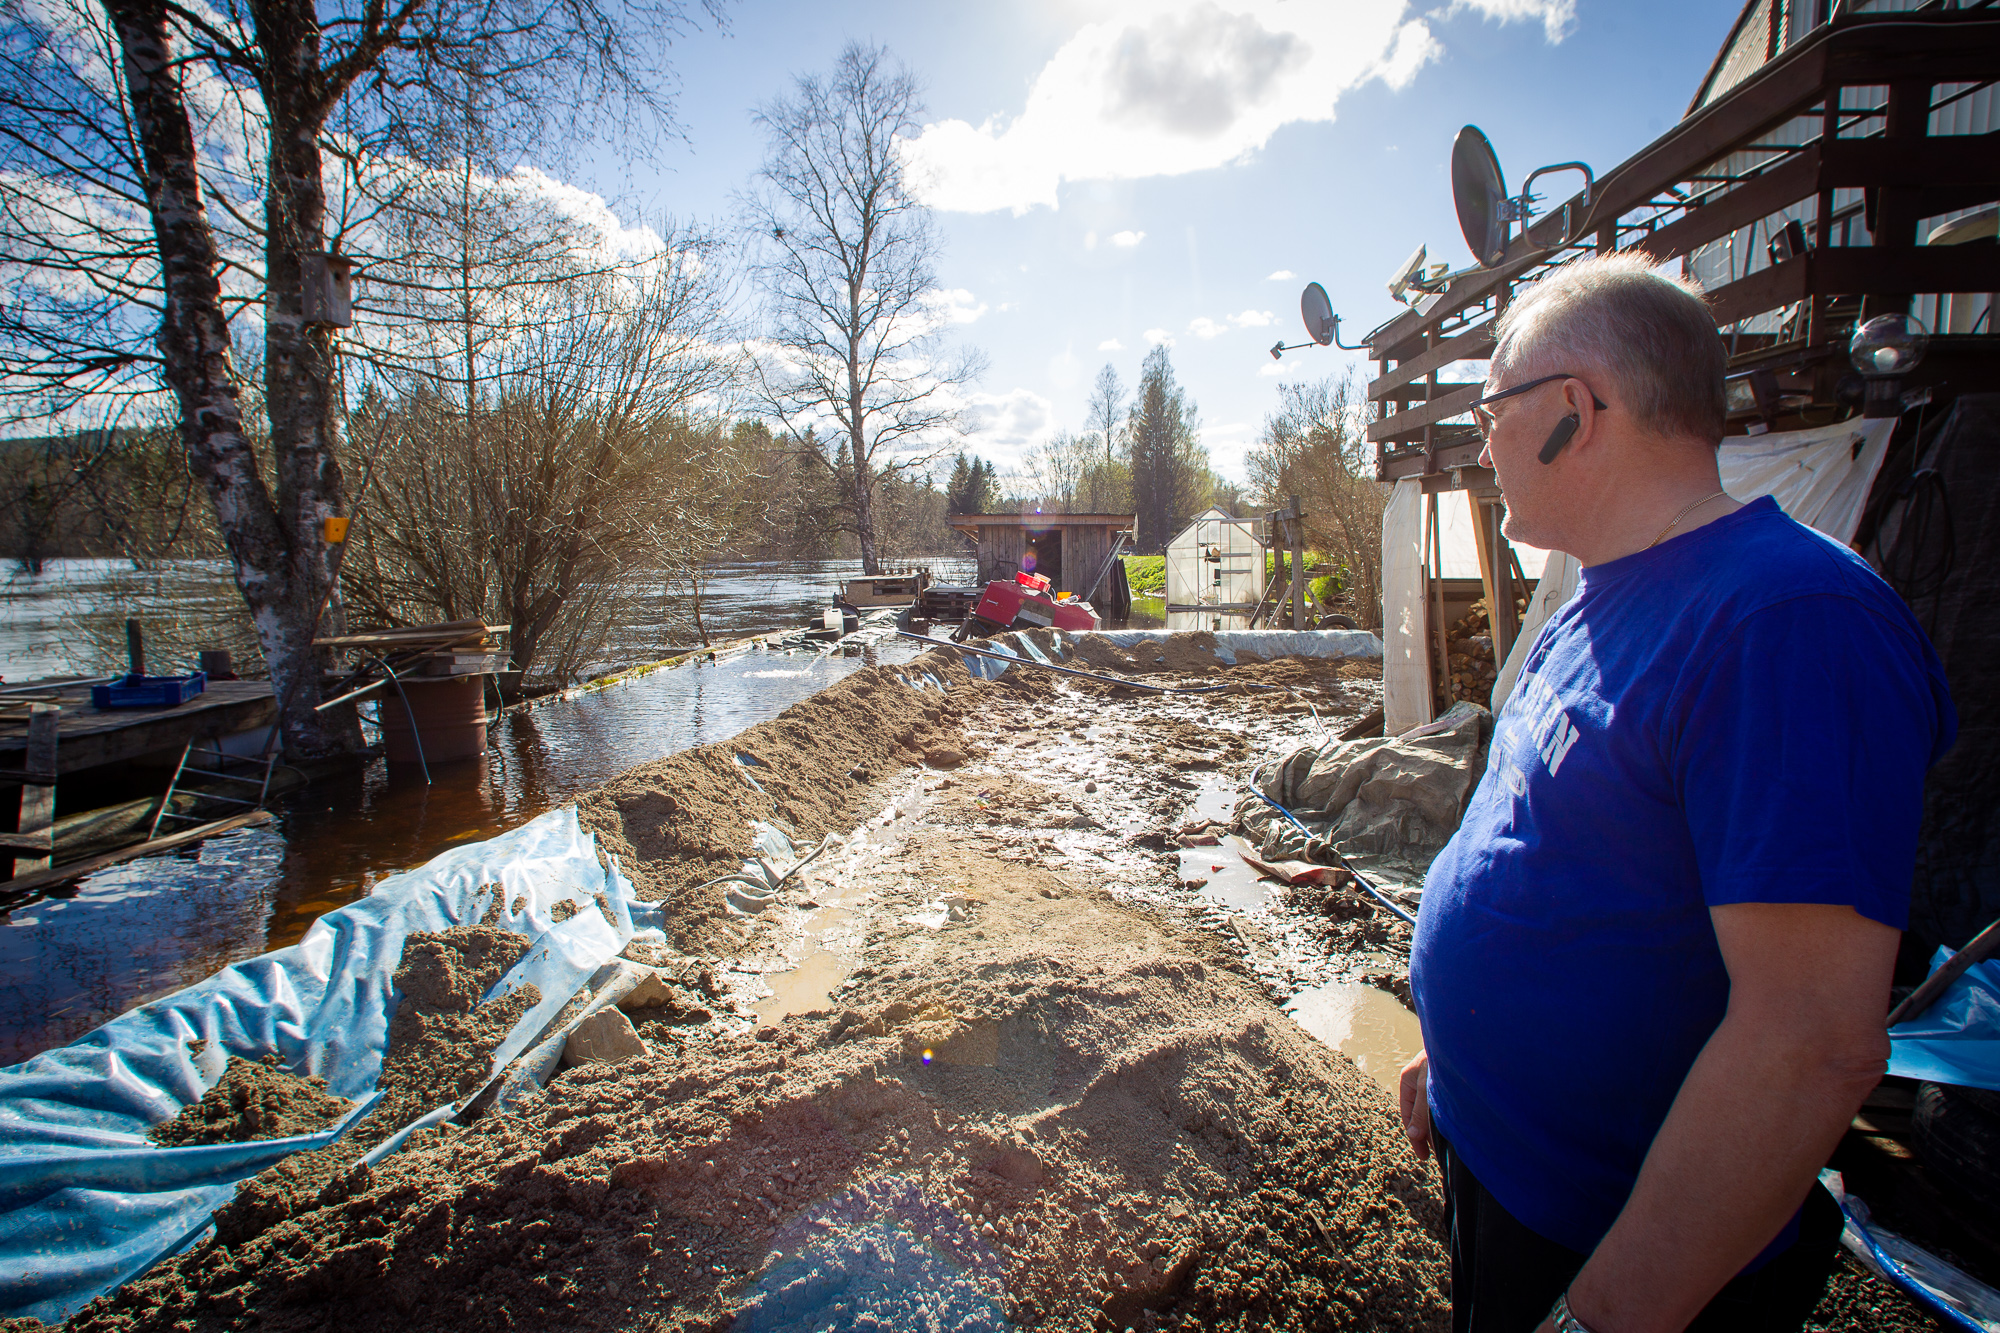 Håkan Forslin had prepared for the spring flood by building four-feet walls . It did not prove enough.